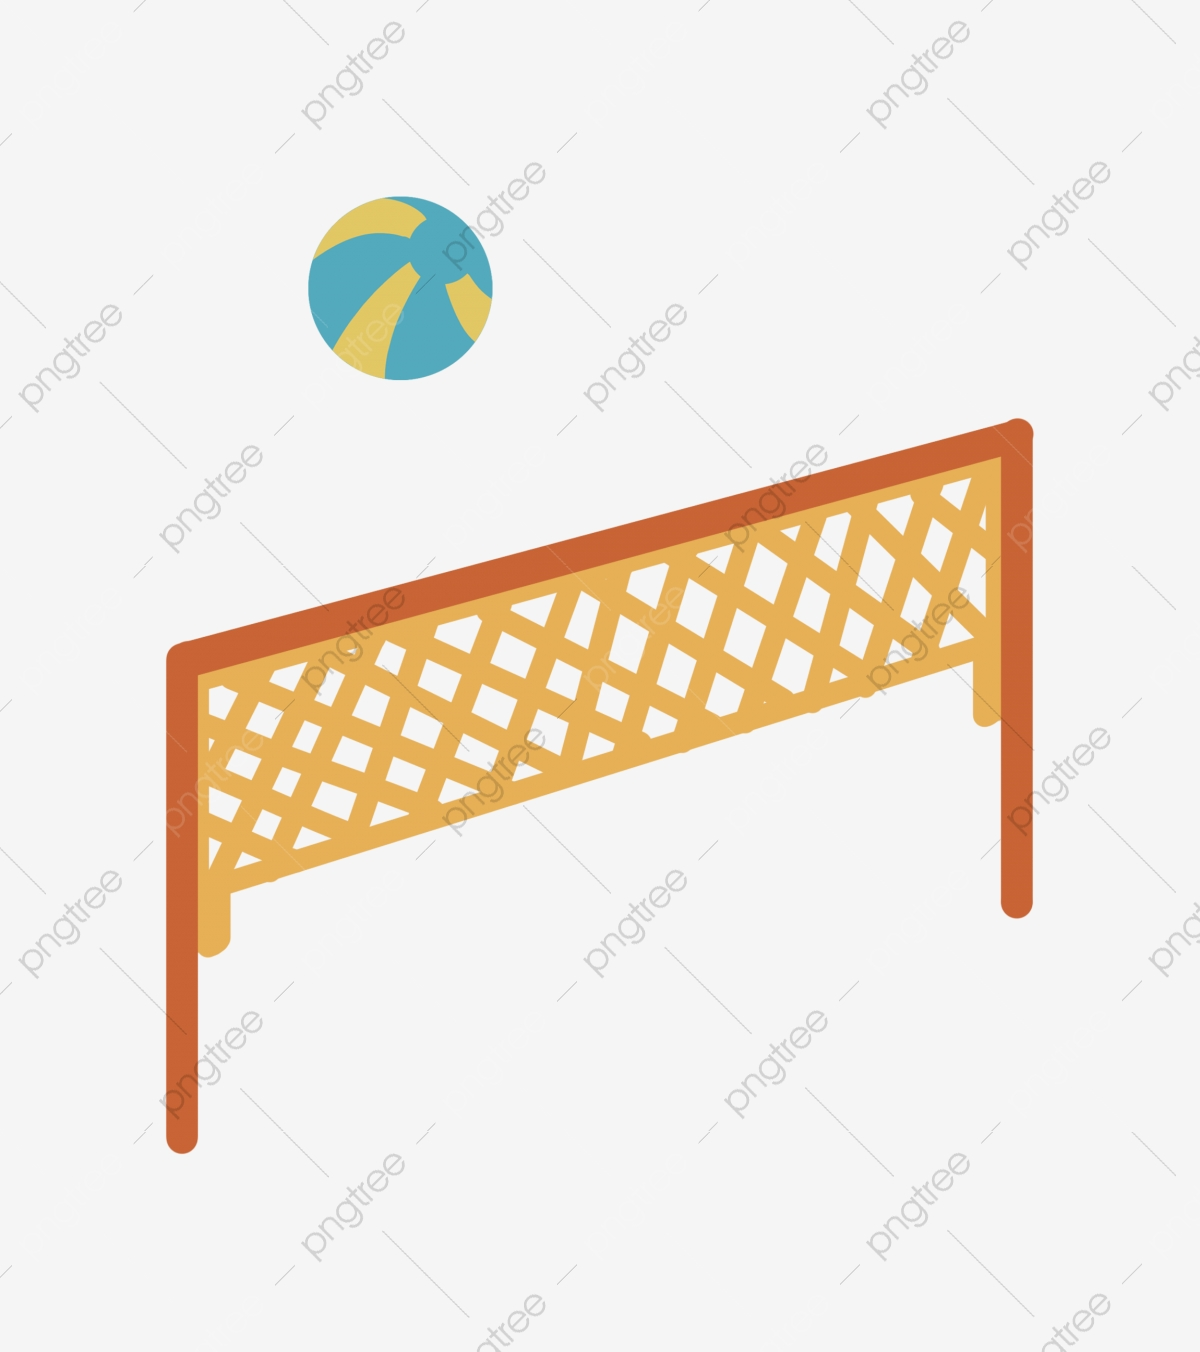 Volleyball Court Png Vector Psd And Clipart With Transparent Background For Free Download Pngtree